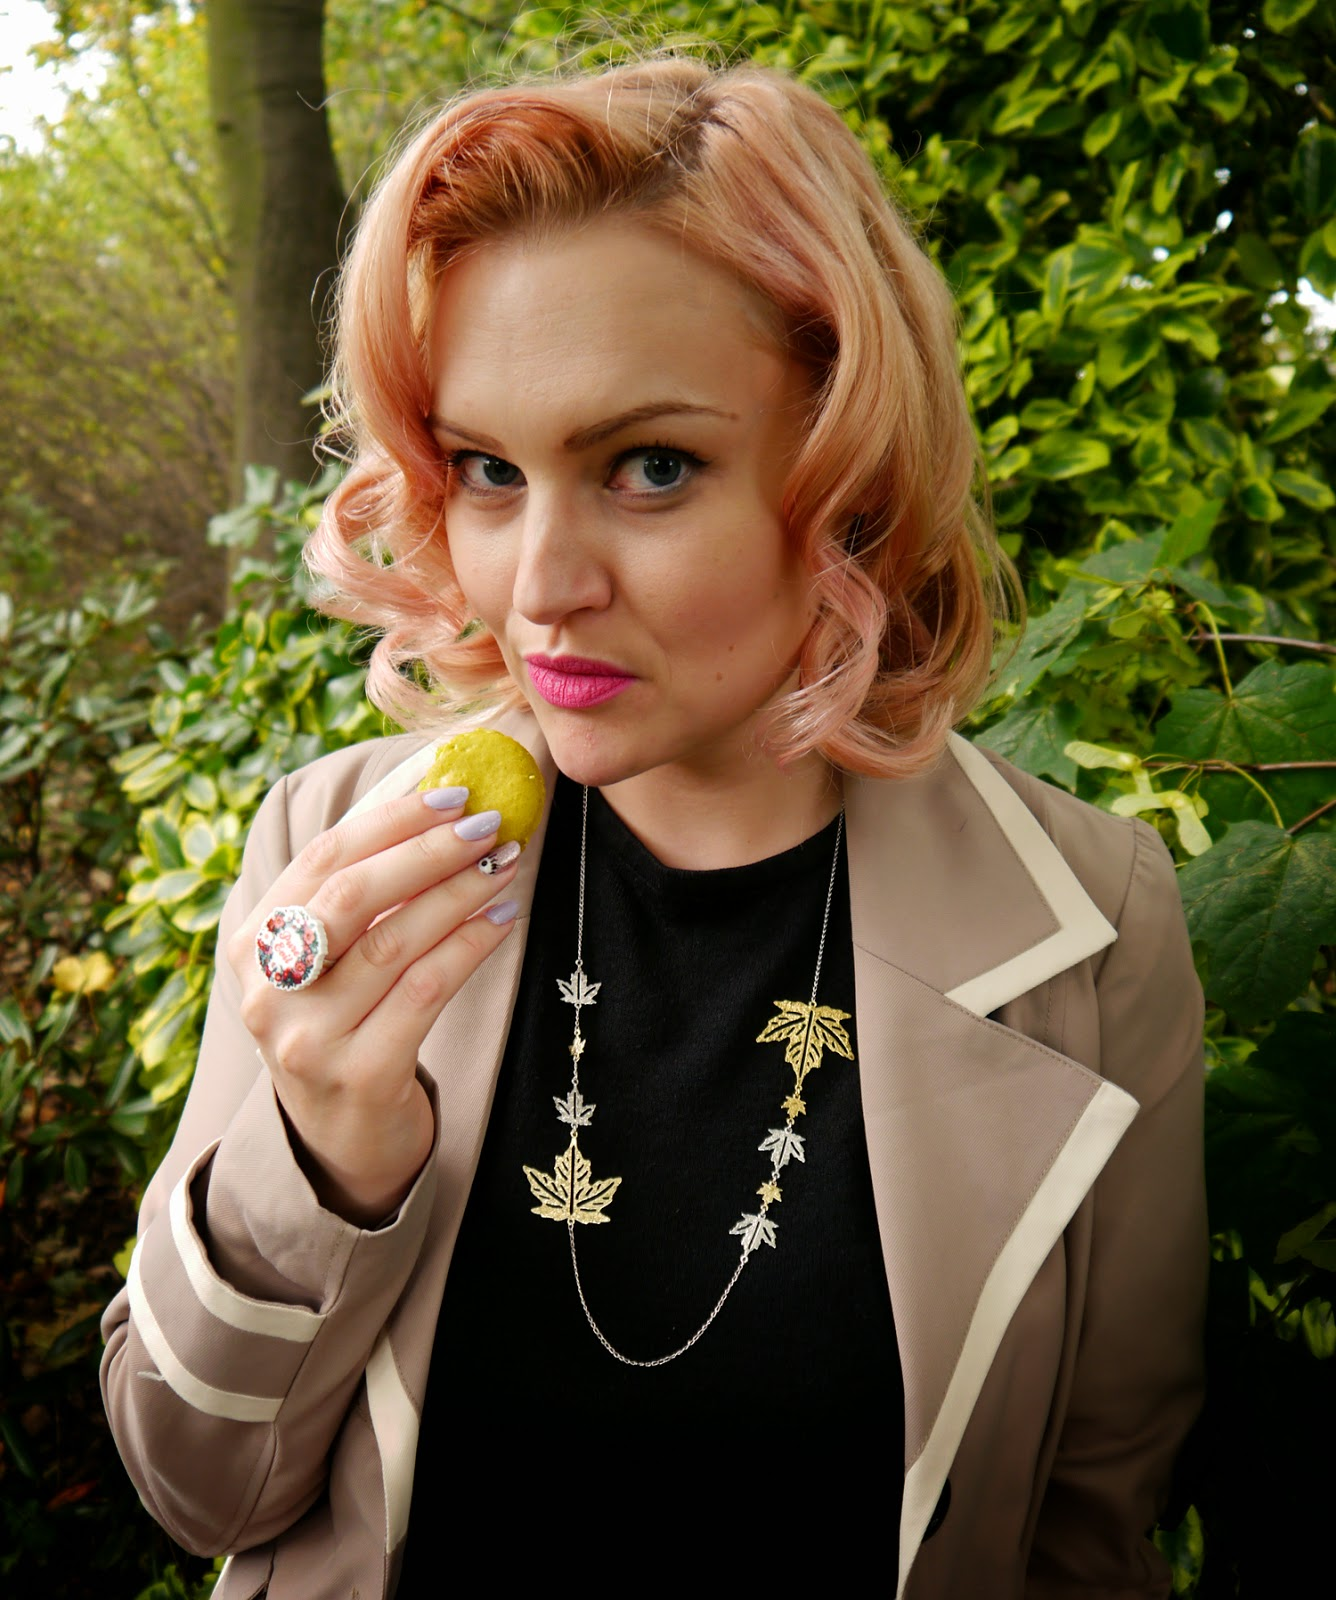 peach hair, vintage hair, pin up, pin curl, macarons, Mademoiselle Macaron, Edinburgh, La La Land, jewellery, Autumn style, Fall, Princes Street, model, pretty